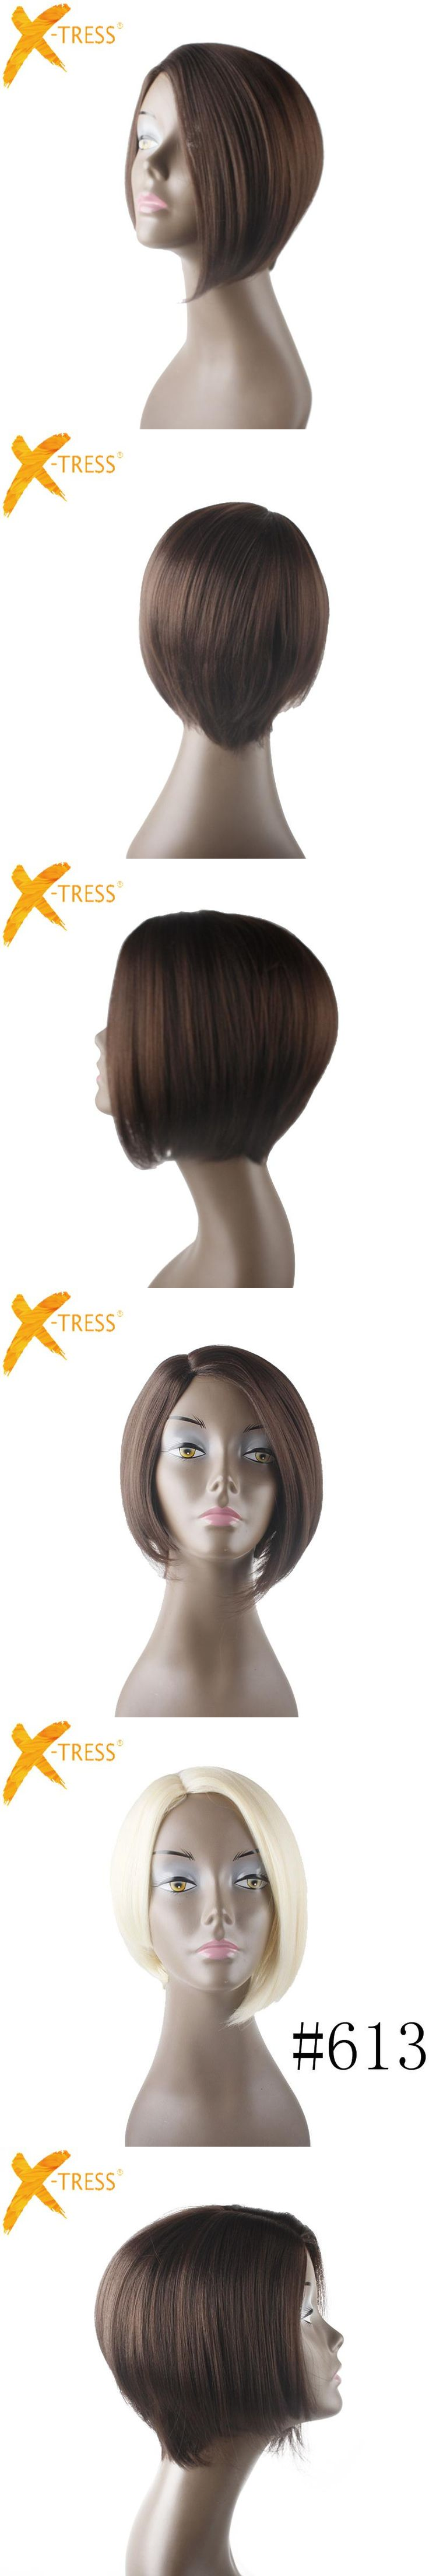 X-TRESS Short Straight Hair Wig With Bangs BOB Wigs For Black Women 12 Inches Heat Resistant Synthetic Wigs Side Parting Blonde